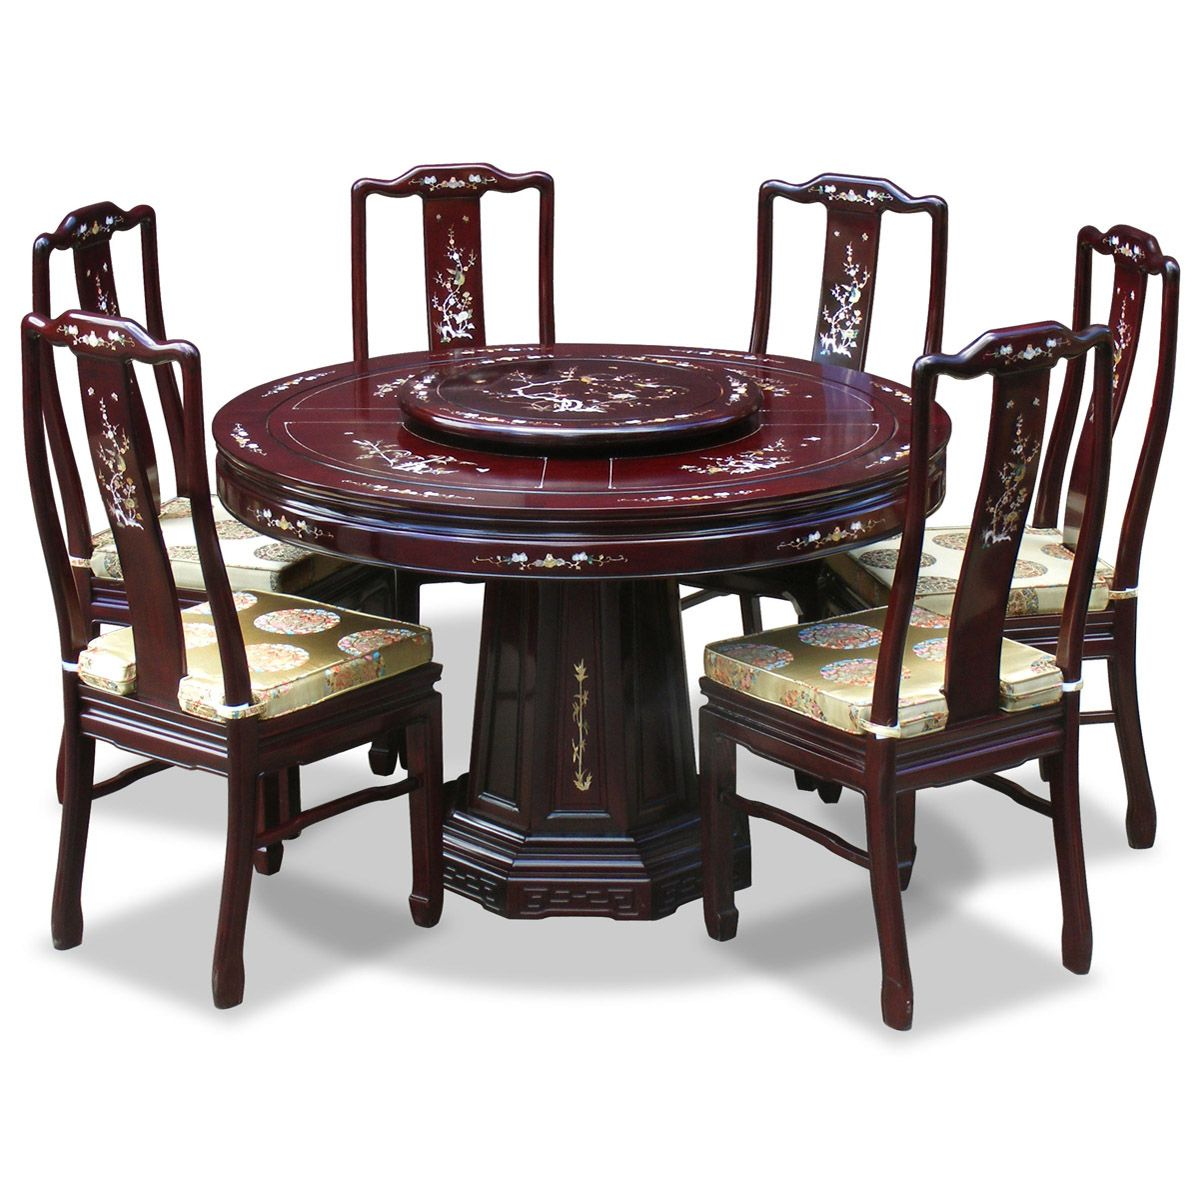 kitchen table round 48in Rosewood Mother of Pearl Design Round Dining Table with 6 Chairs